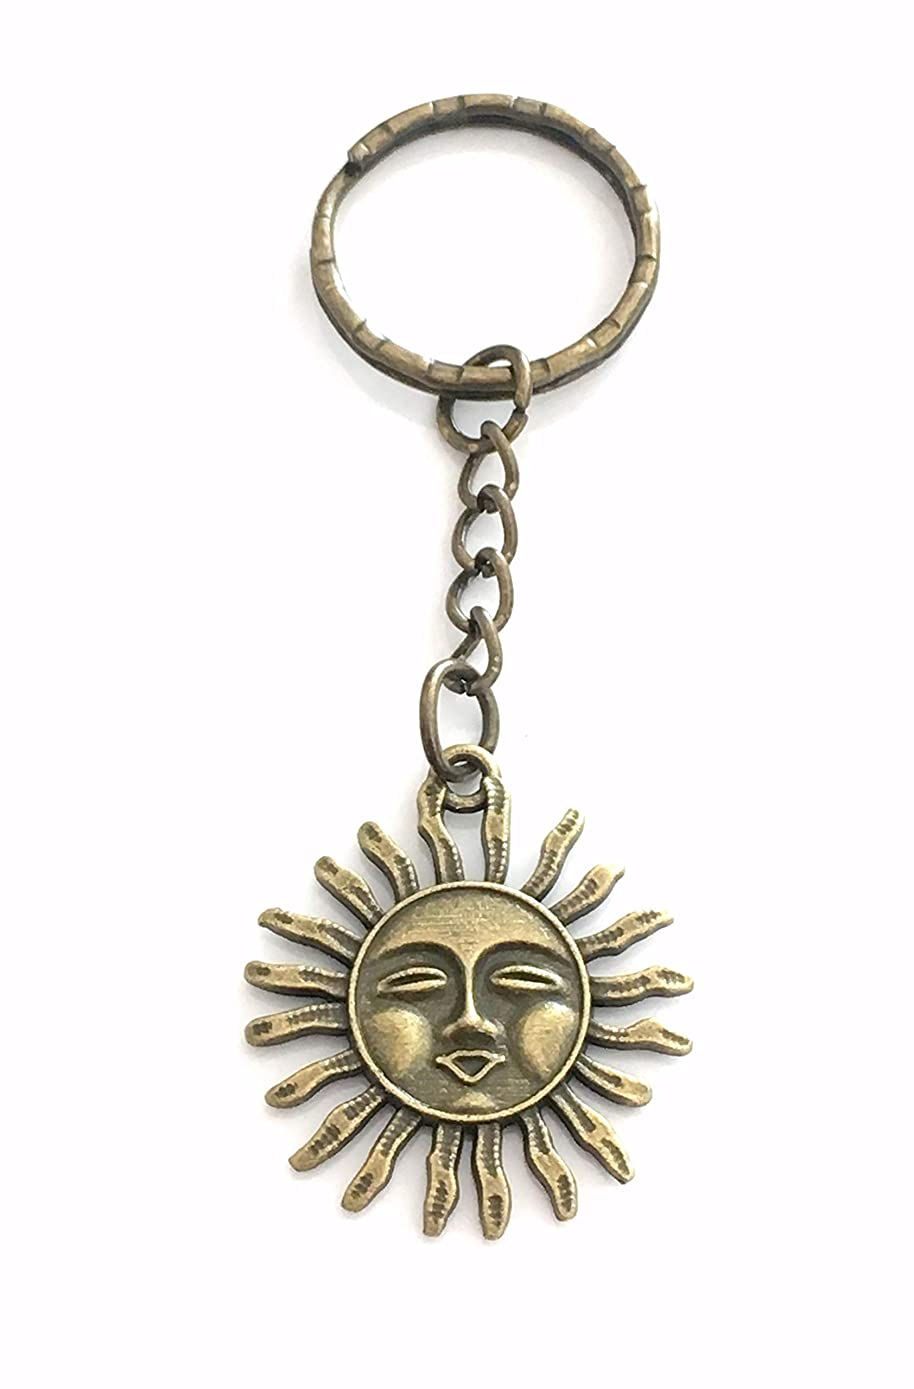 SALE Bronze Sun Keychain, Sunshine Key Chain, Gift for Women or Men - Unisex